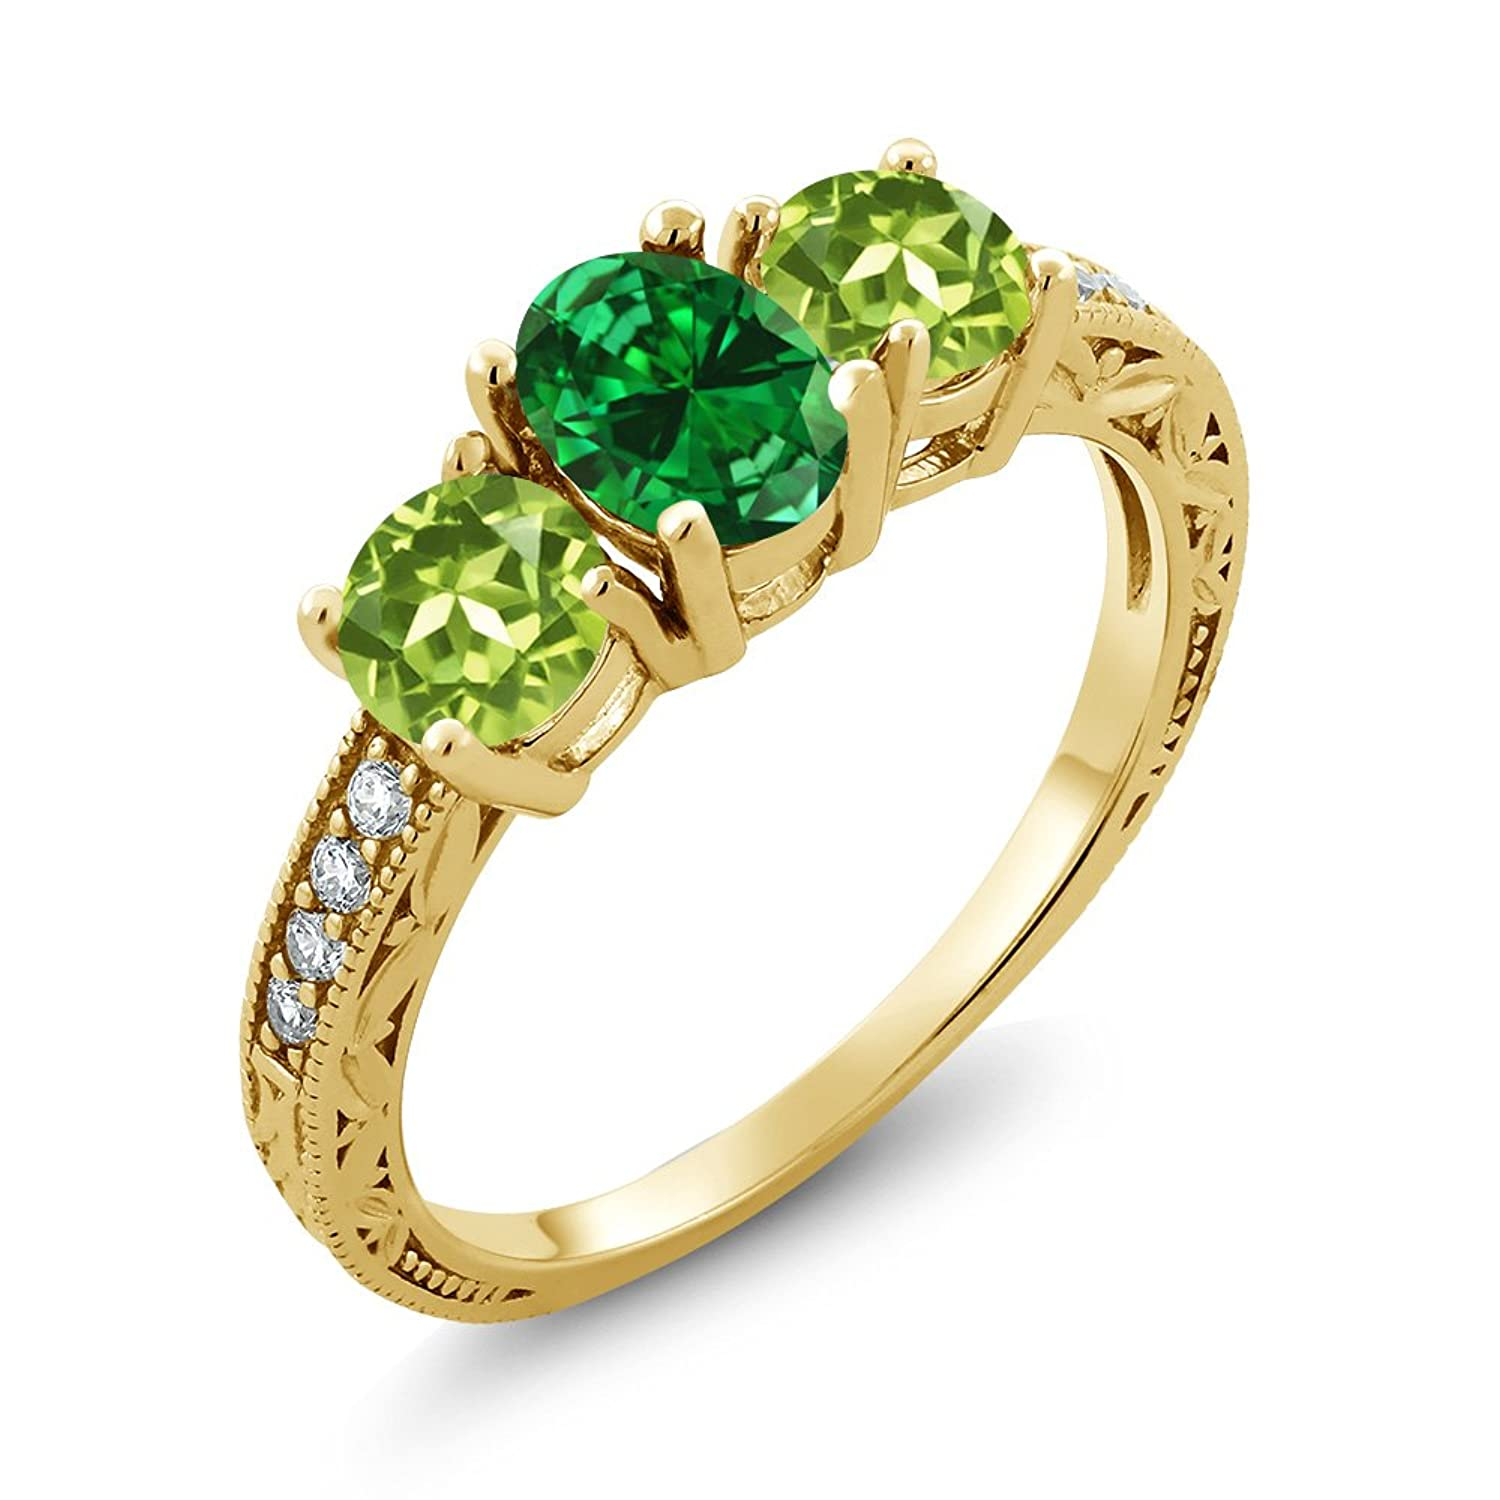 the is marriage fidelity benefits treated desires stone used emotional it and meaning emerald s crystal physical strengthen often can balance poet heat to uses pin gemstone